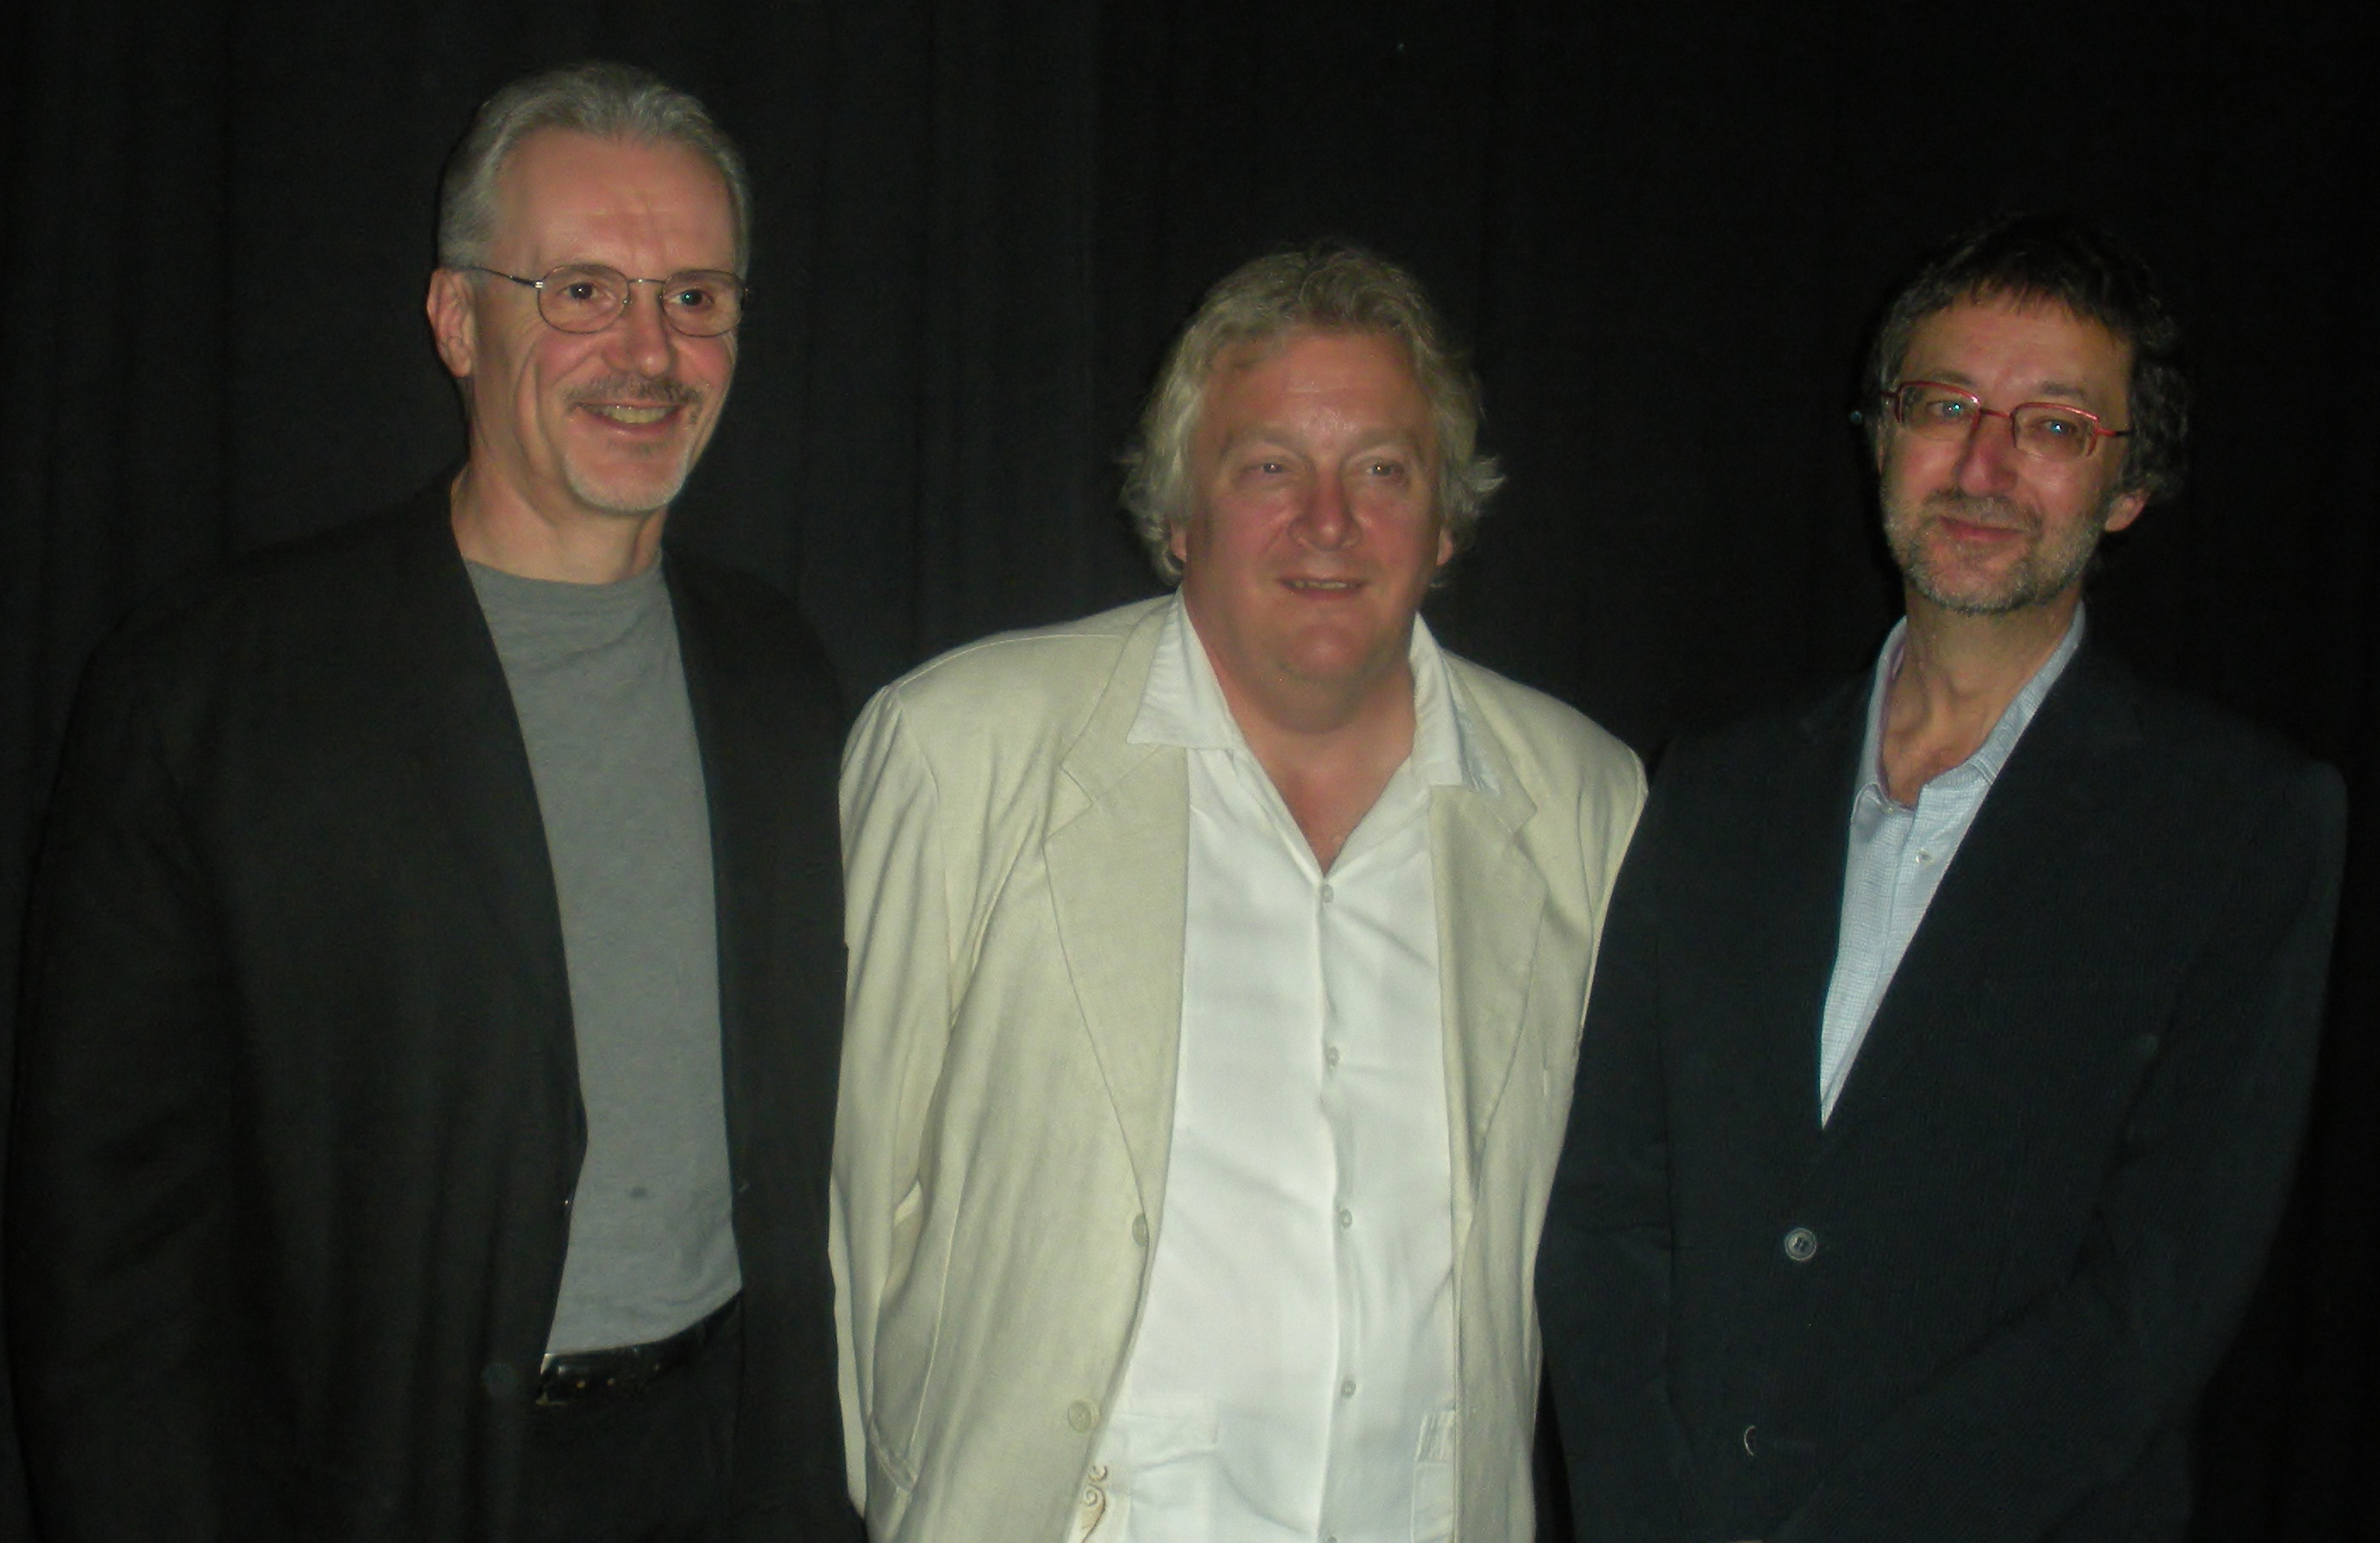 L-R: Douglas Smith, Hayden Trenholm and Guy Gavriel Kay